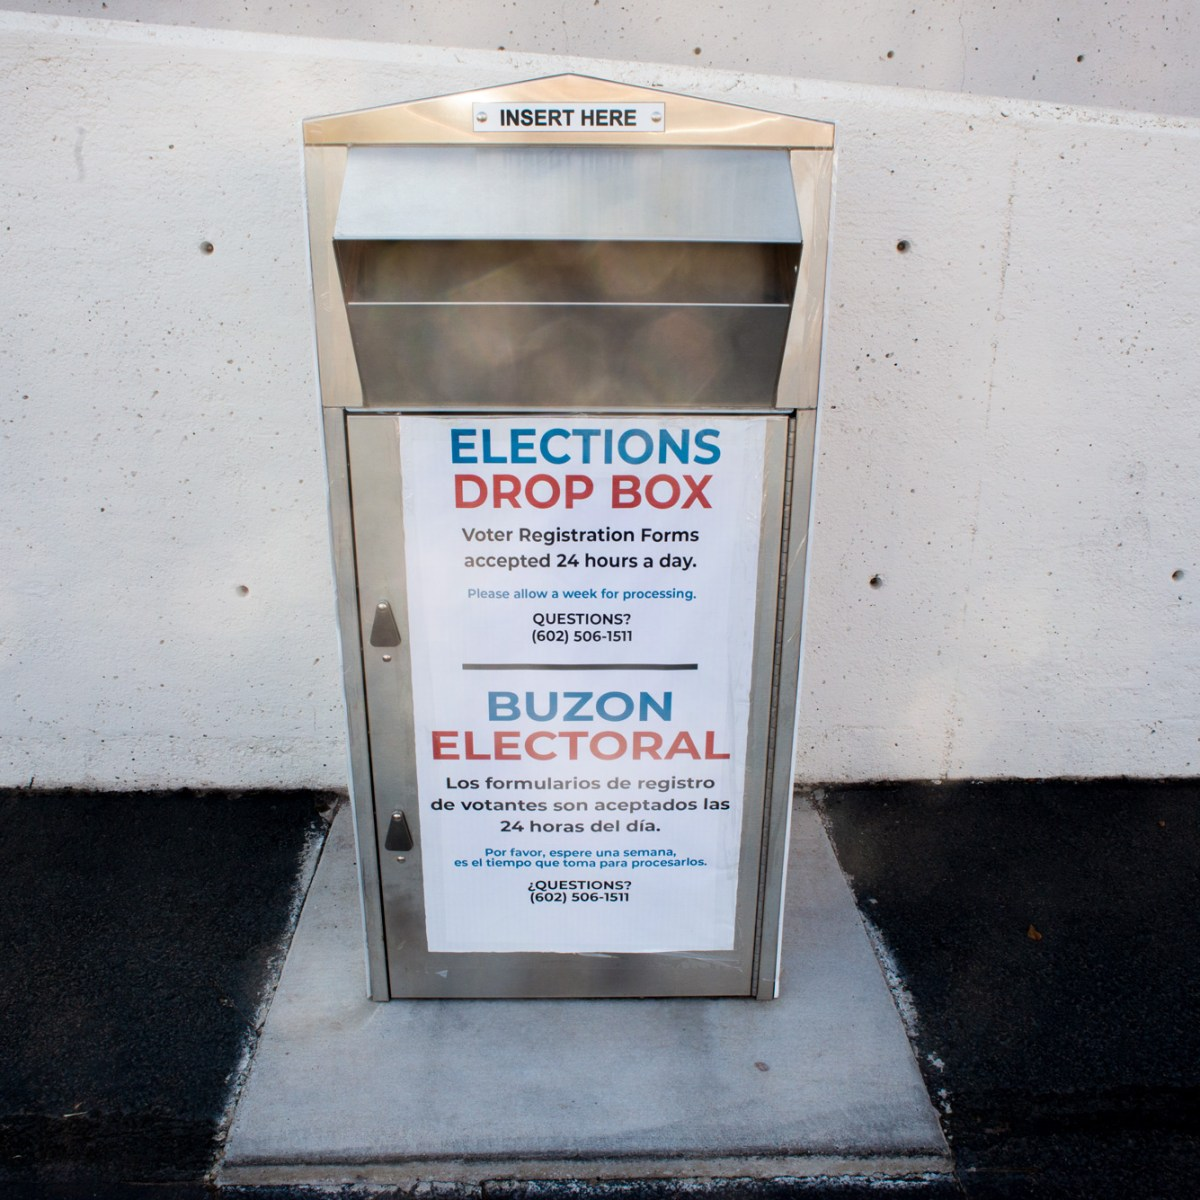 An election ballot dropbox is shown outside Maricopa County Tabulation and Election Center in downtown Phoenix on Sept. 25, 2020. Arizona has rejected tens-of-thousands of ballots in each of the past three federal elections.